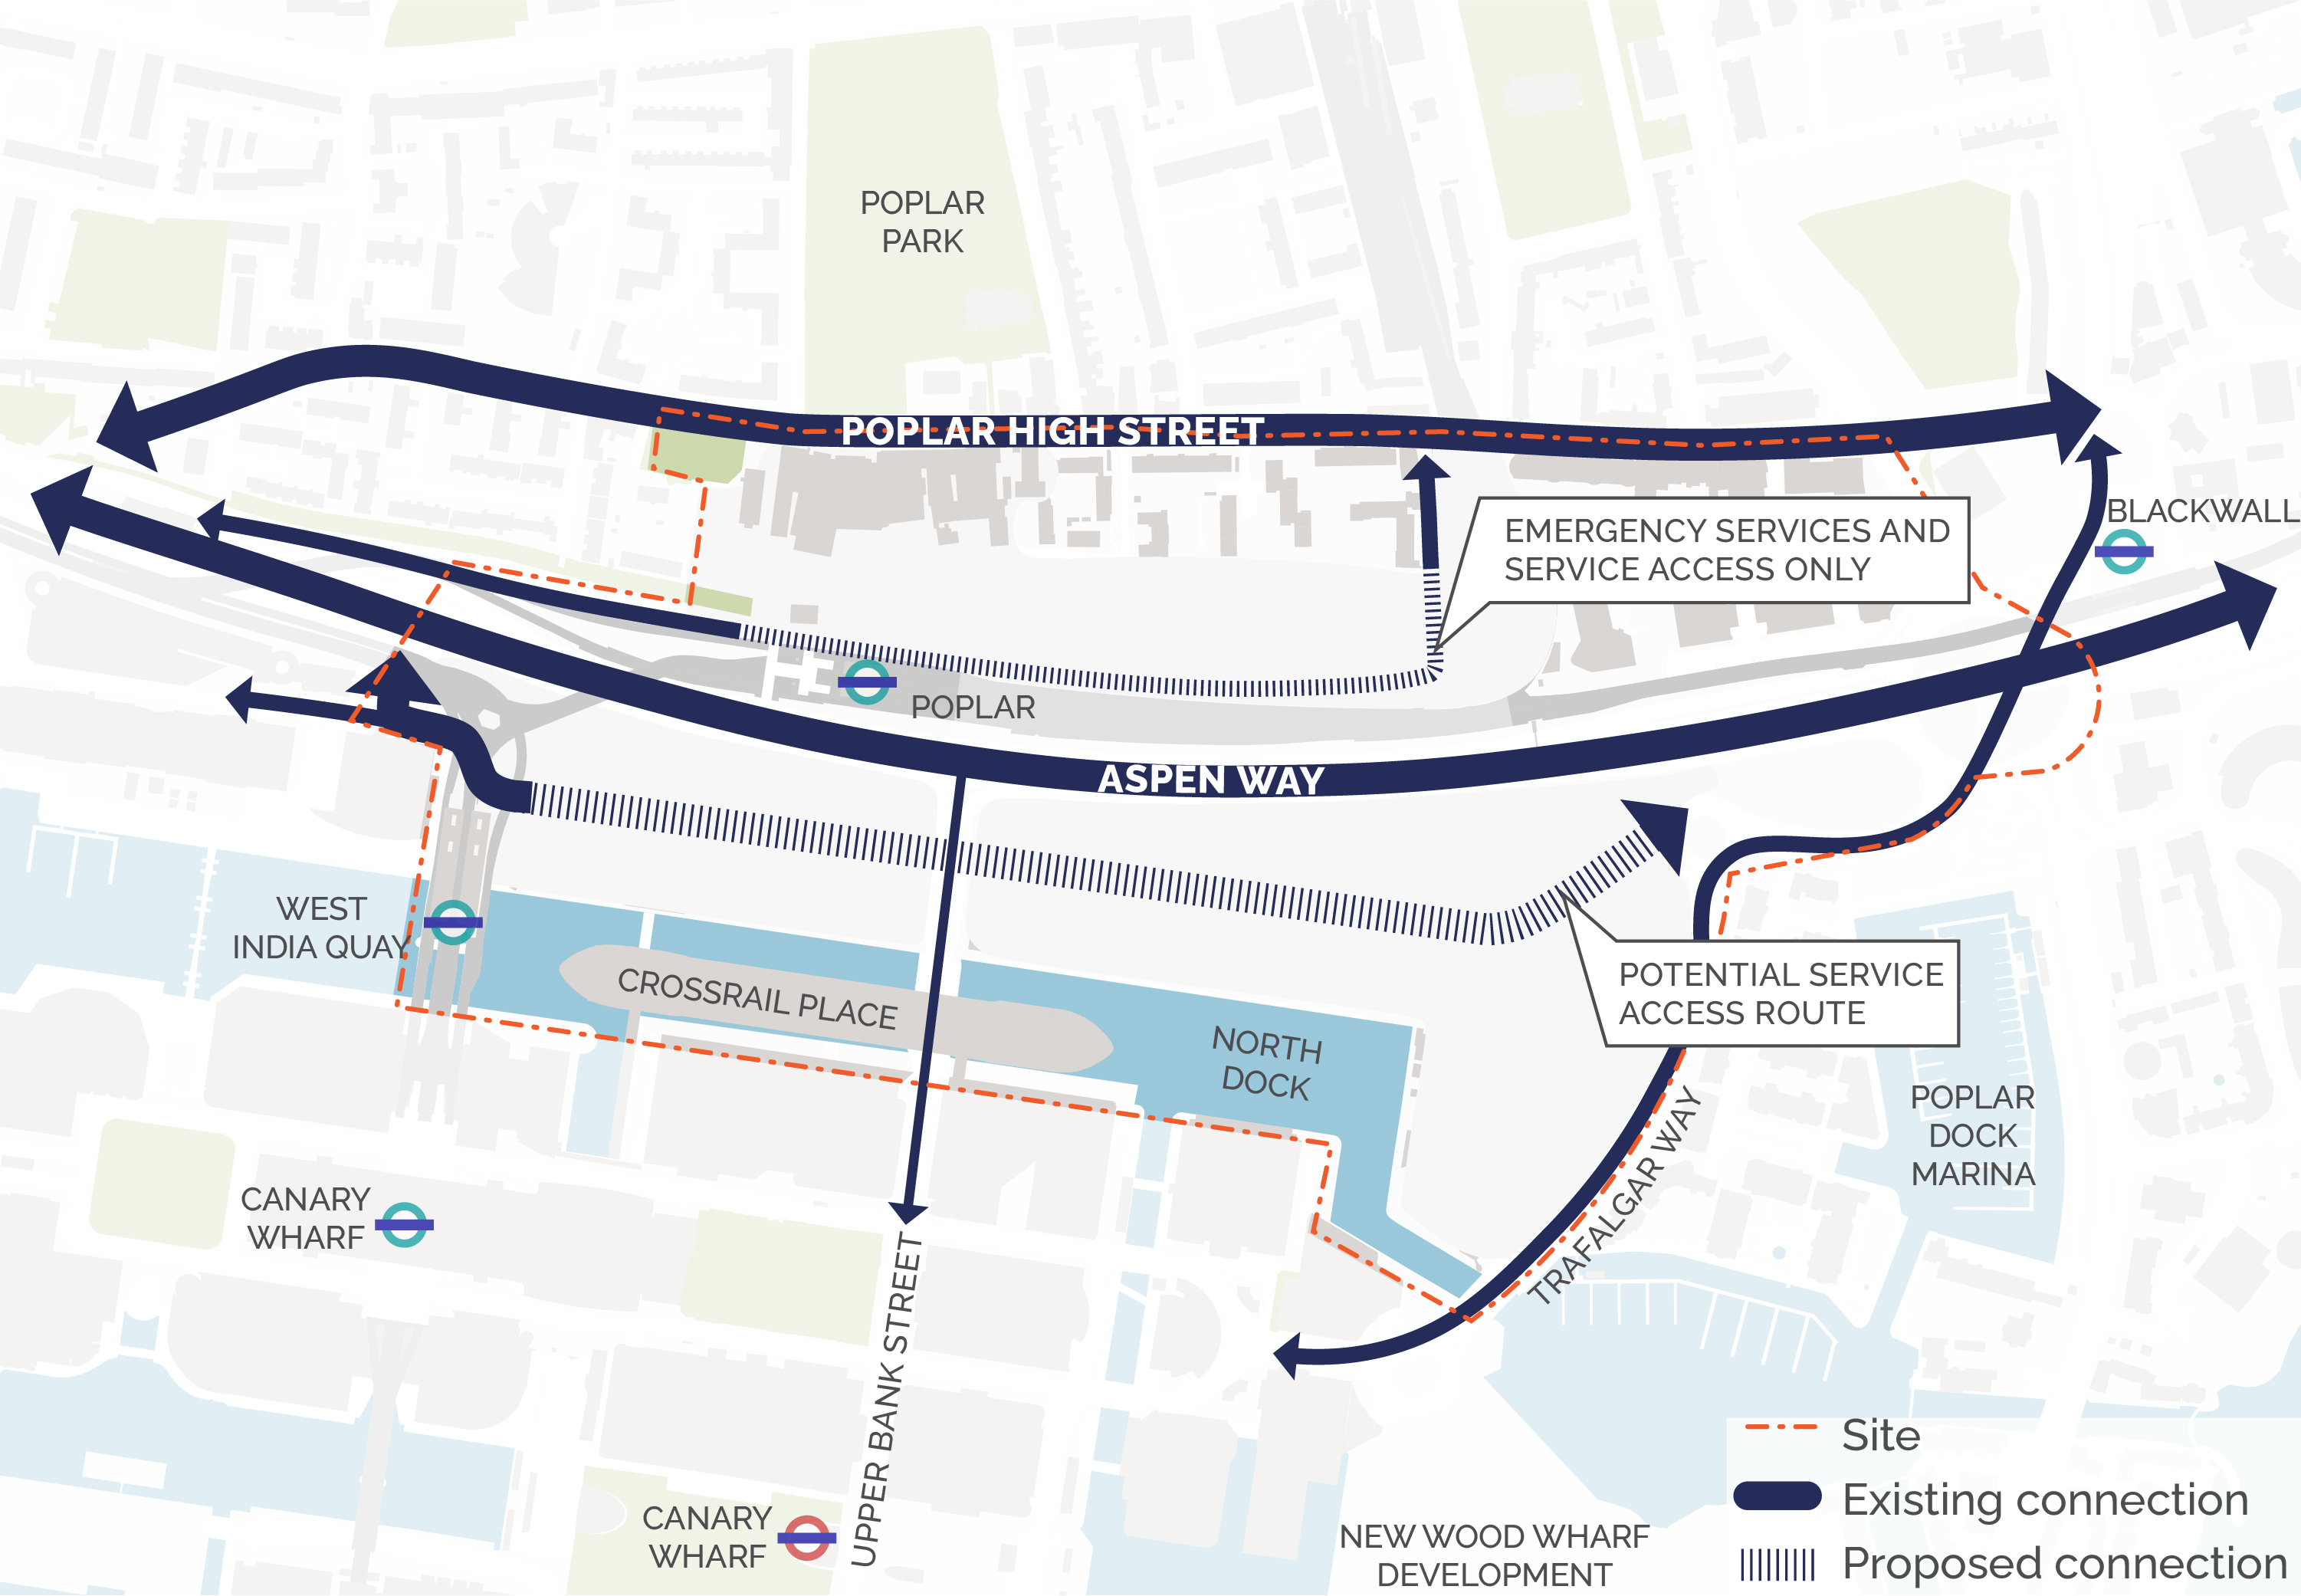 Proposed vehicular connections